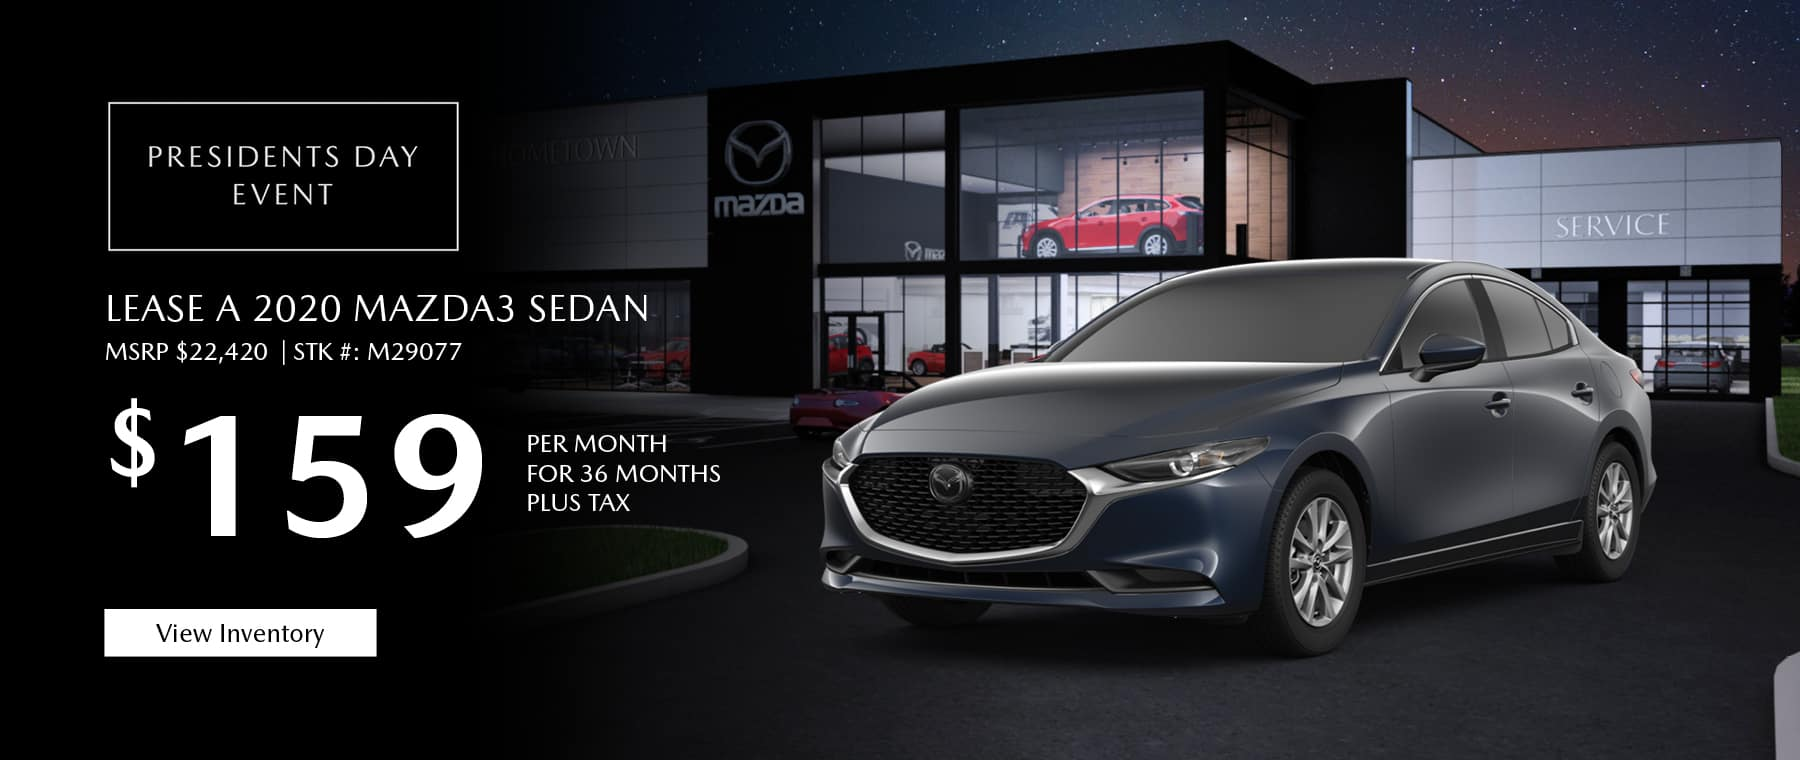 Lease the 2020 Mazda3 sedan for $159 per month, plus tax.